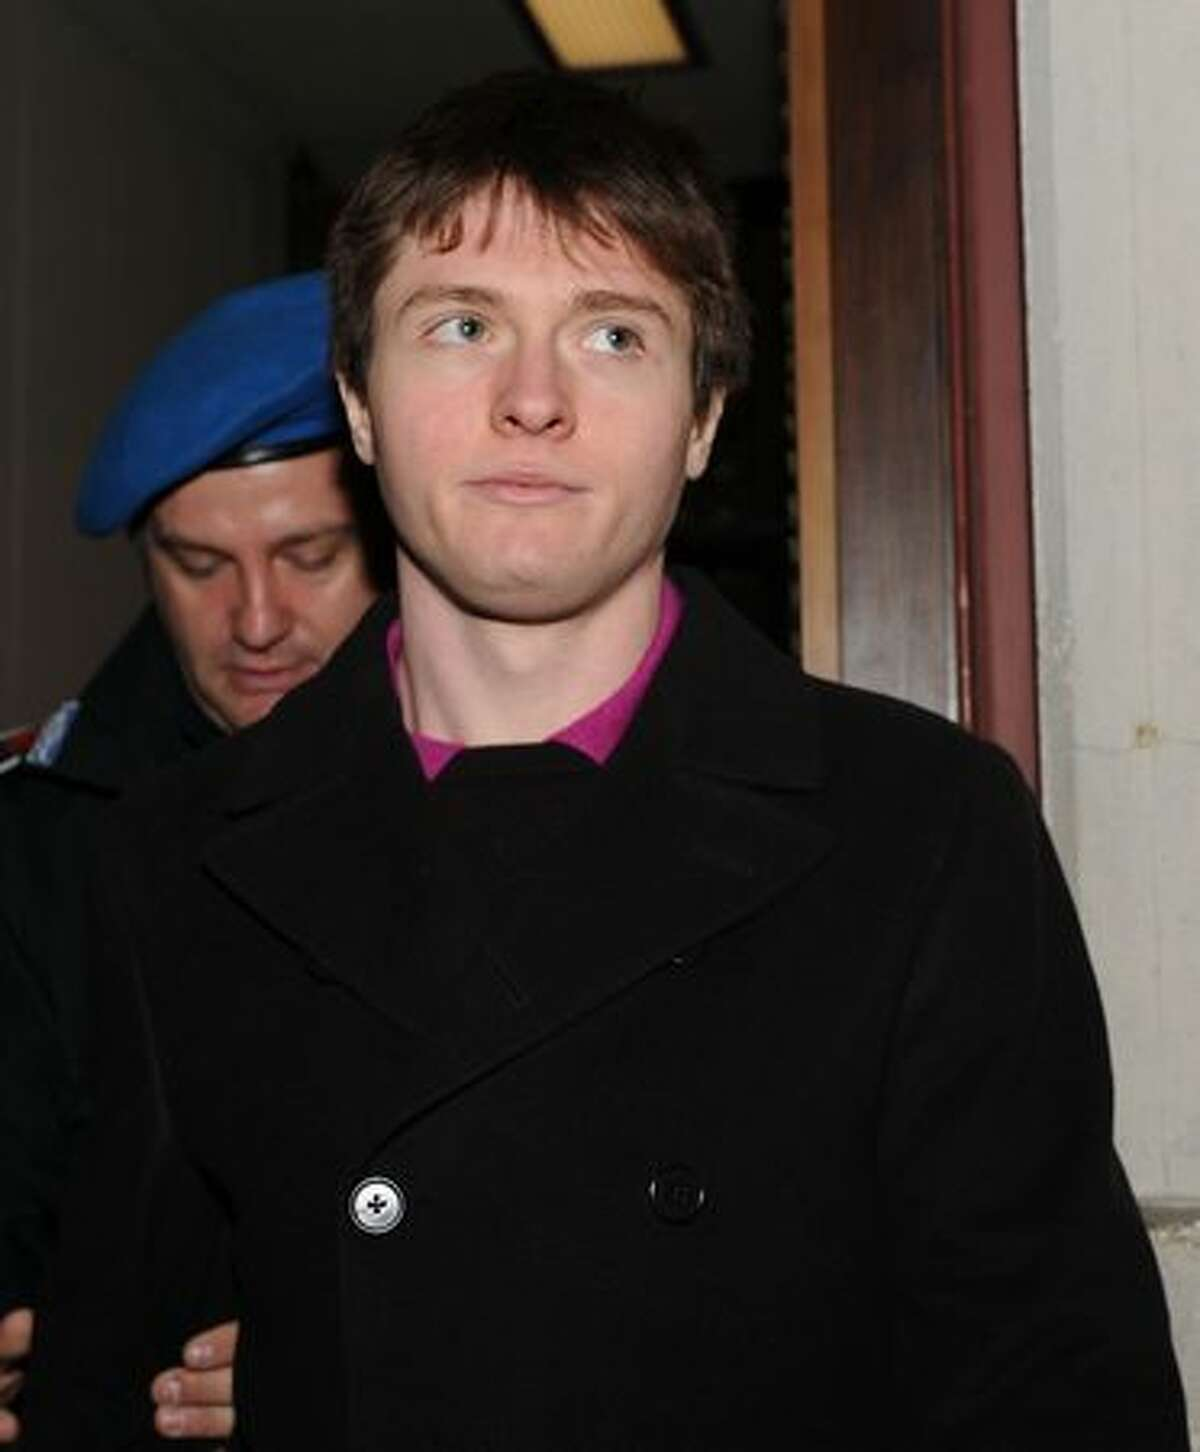 Raffaele Sollecito attends the appeal hearing of Amanda Knox.